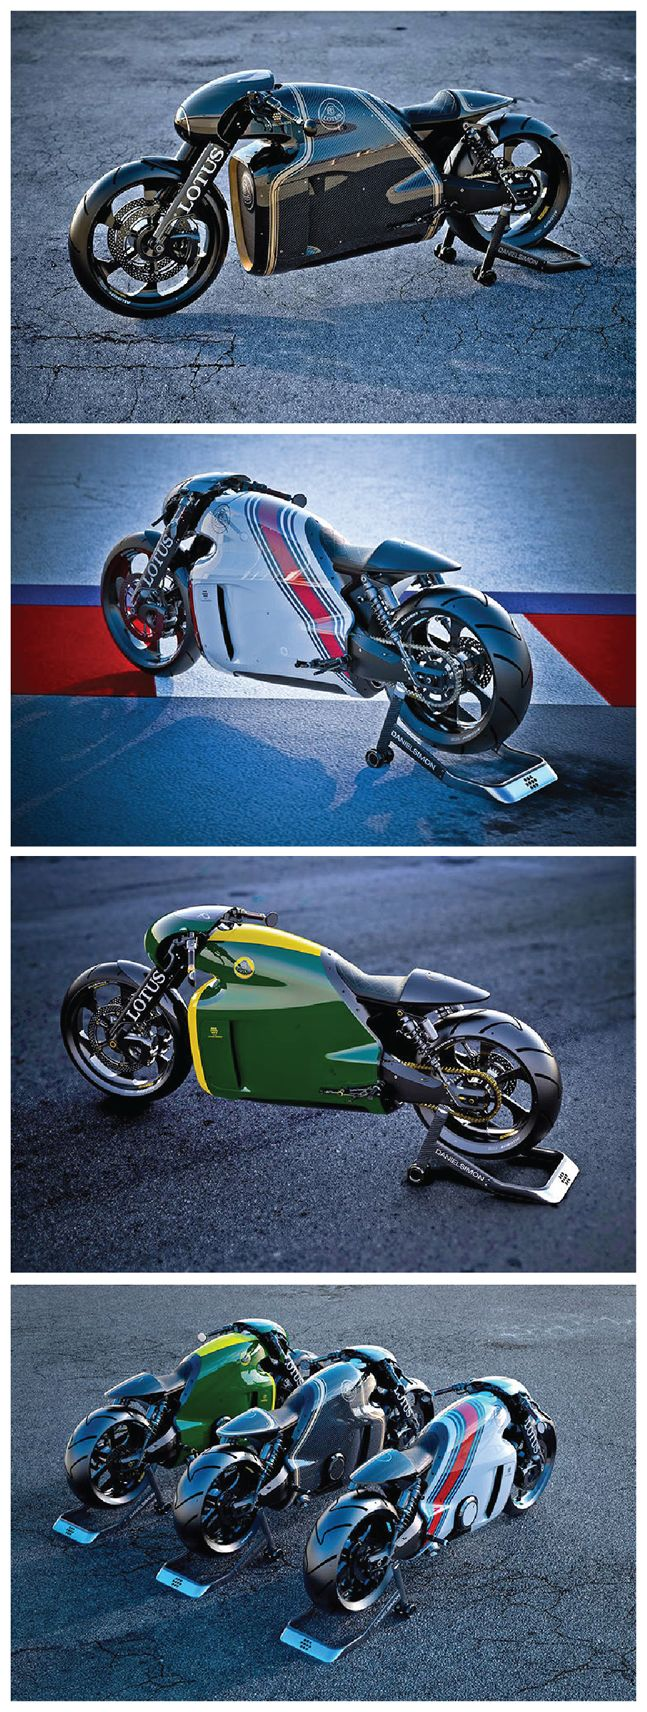 Lotus Builds A Rad Superbike Evocative Of U201cTronu201d